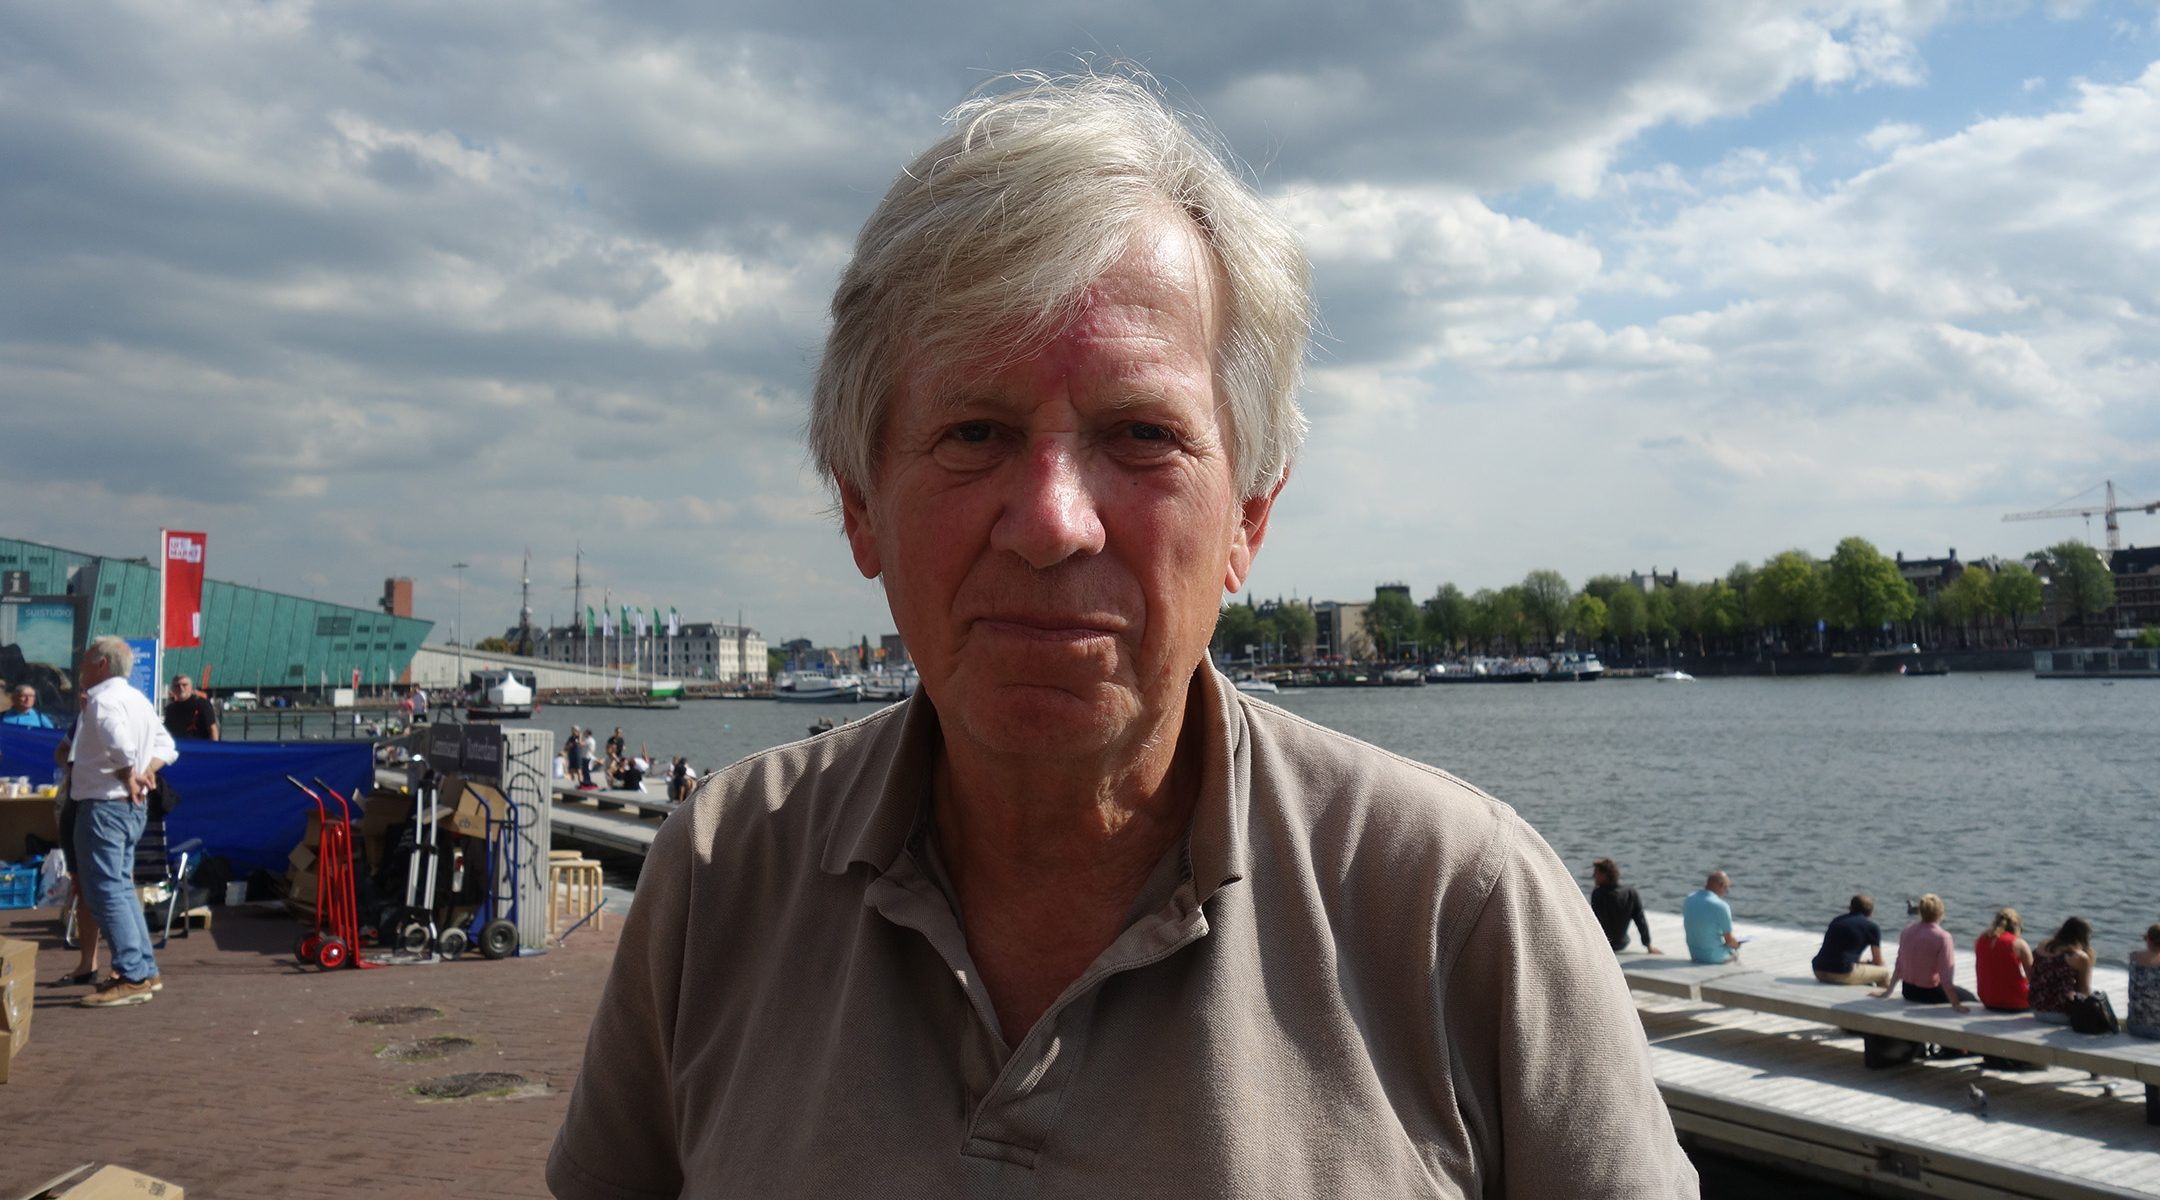 Hans Achterhuis in Amsterdam on August 27, 2017. (Wikimedia Commmons)